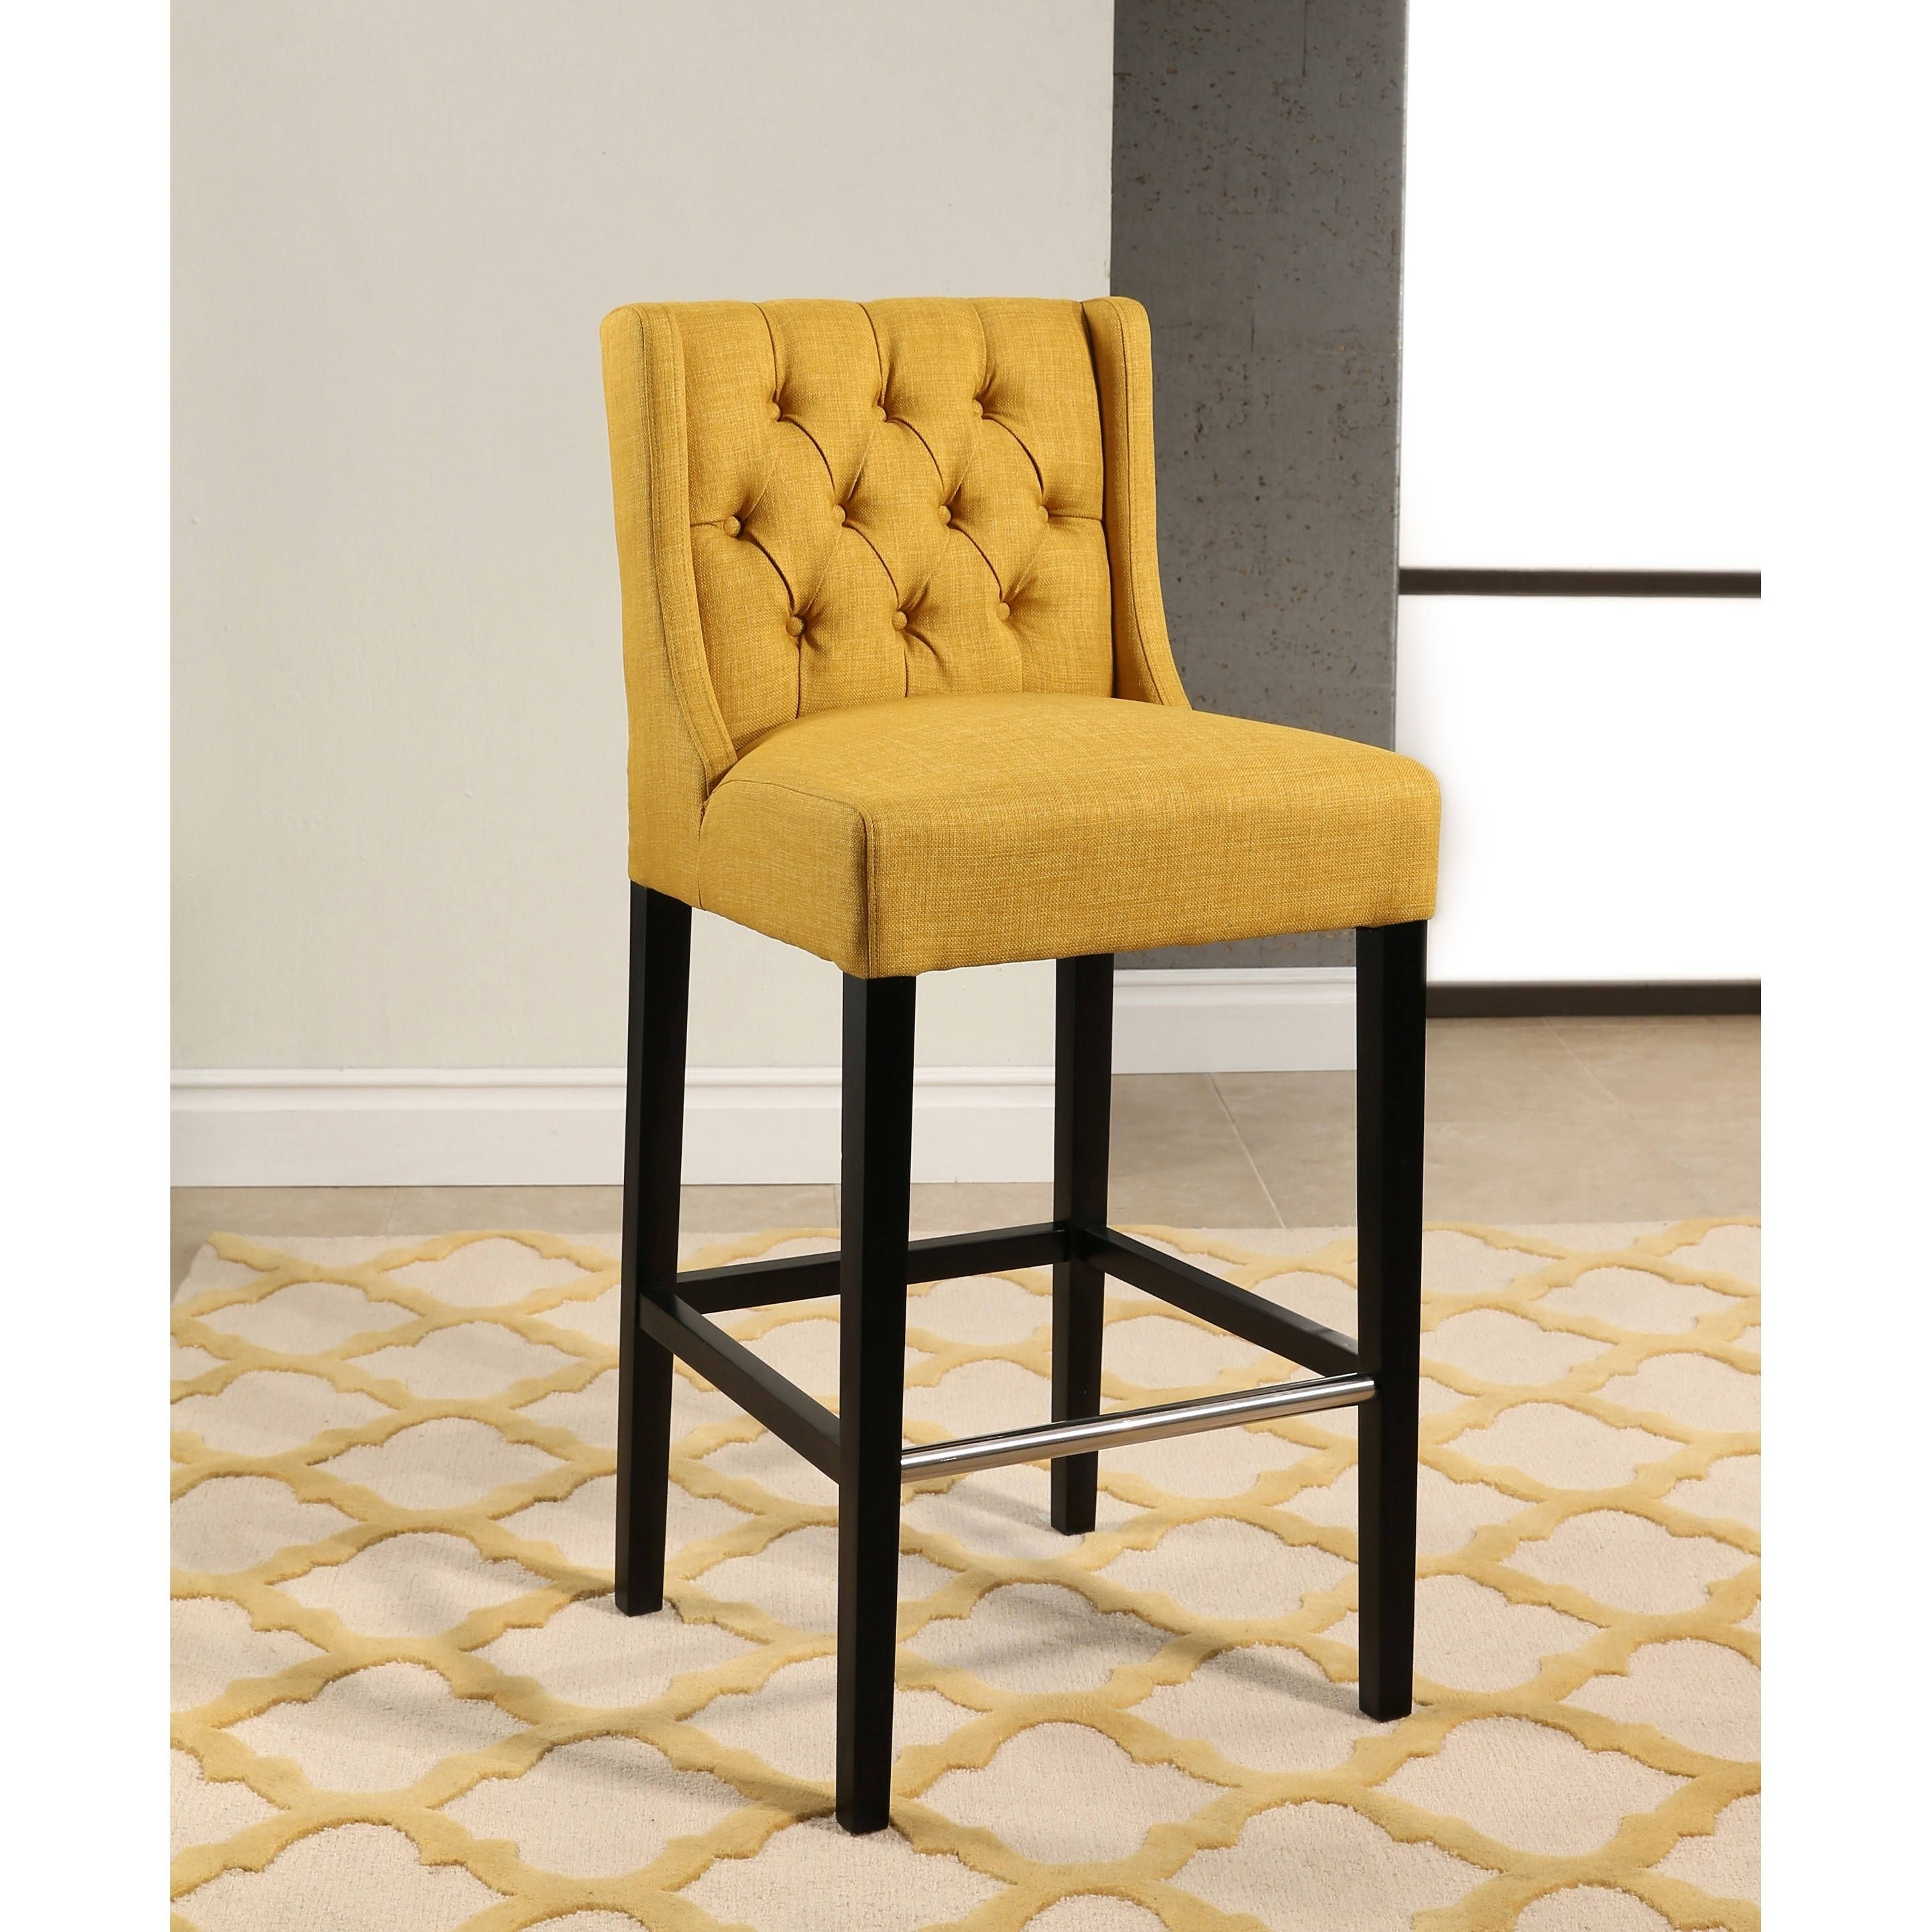 Abbyson Bellville Fabric Upholstered Tufted 30 Inch Bar Stool